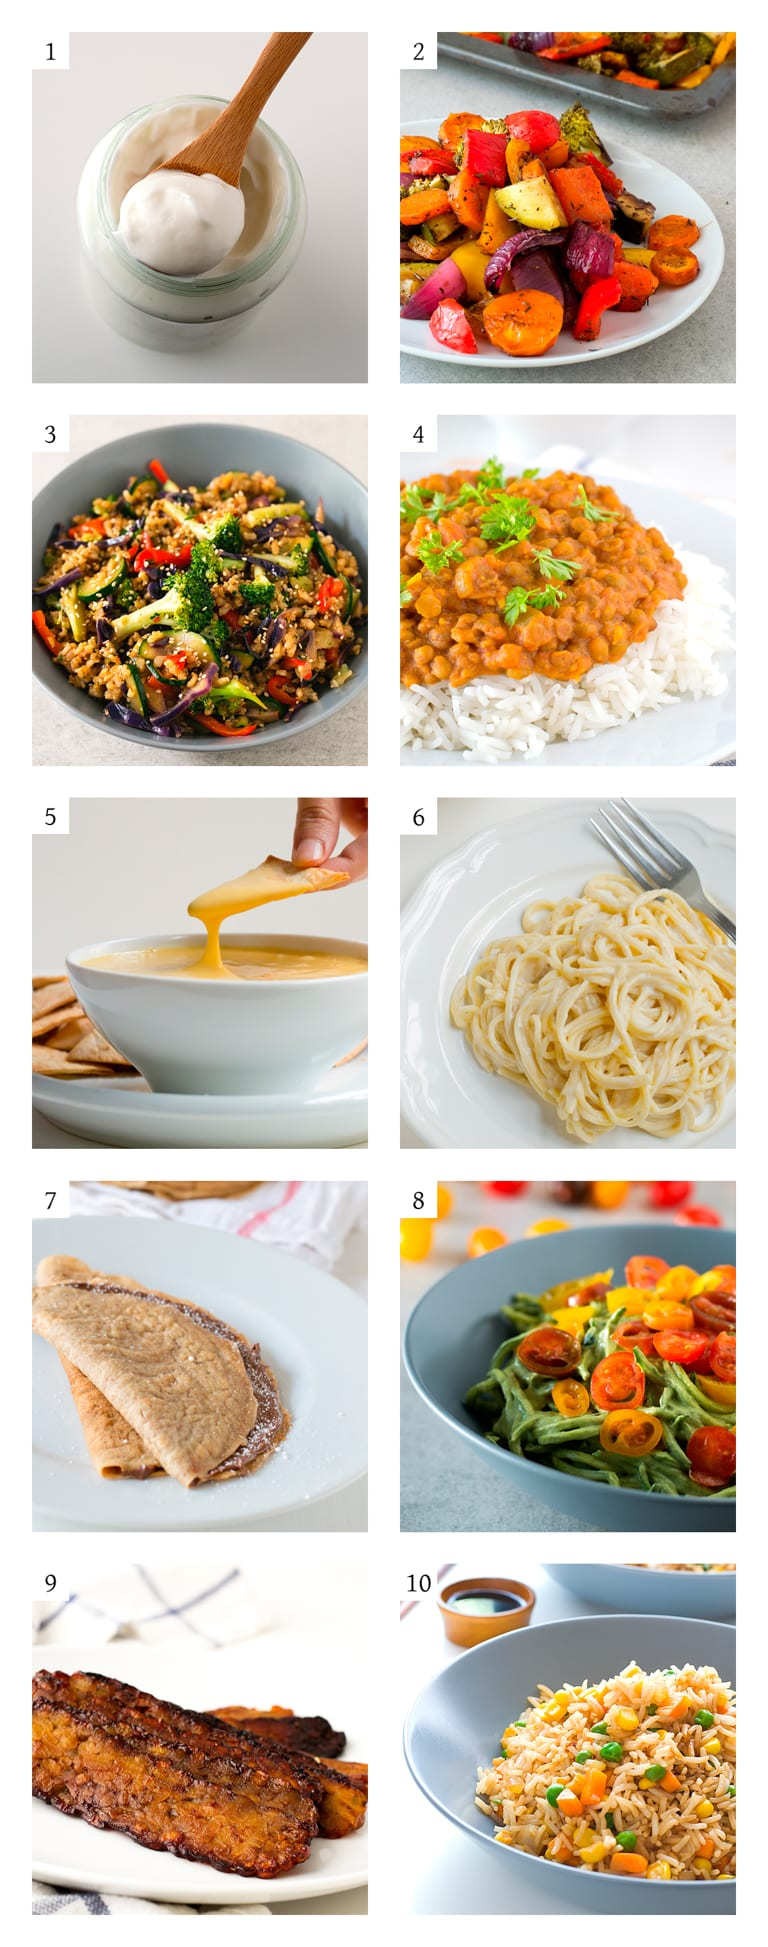 Our 10 Most Popular Recipes of 2017